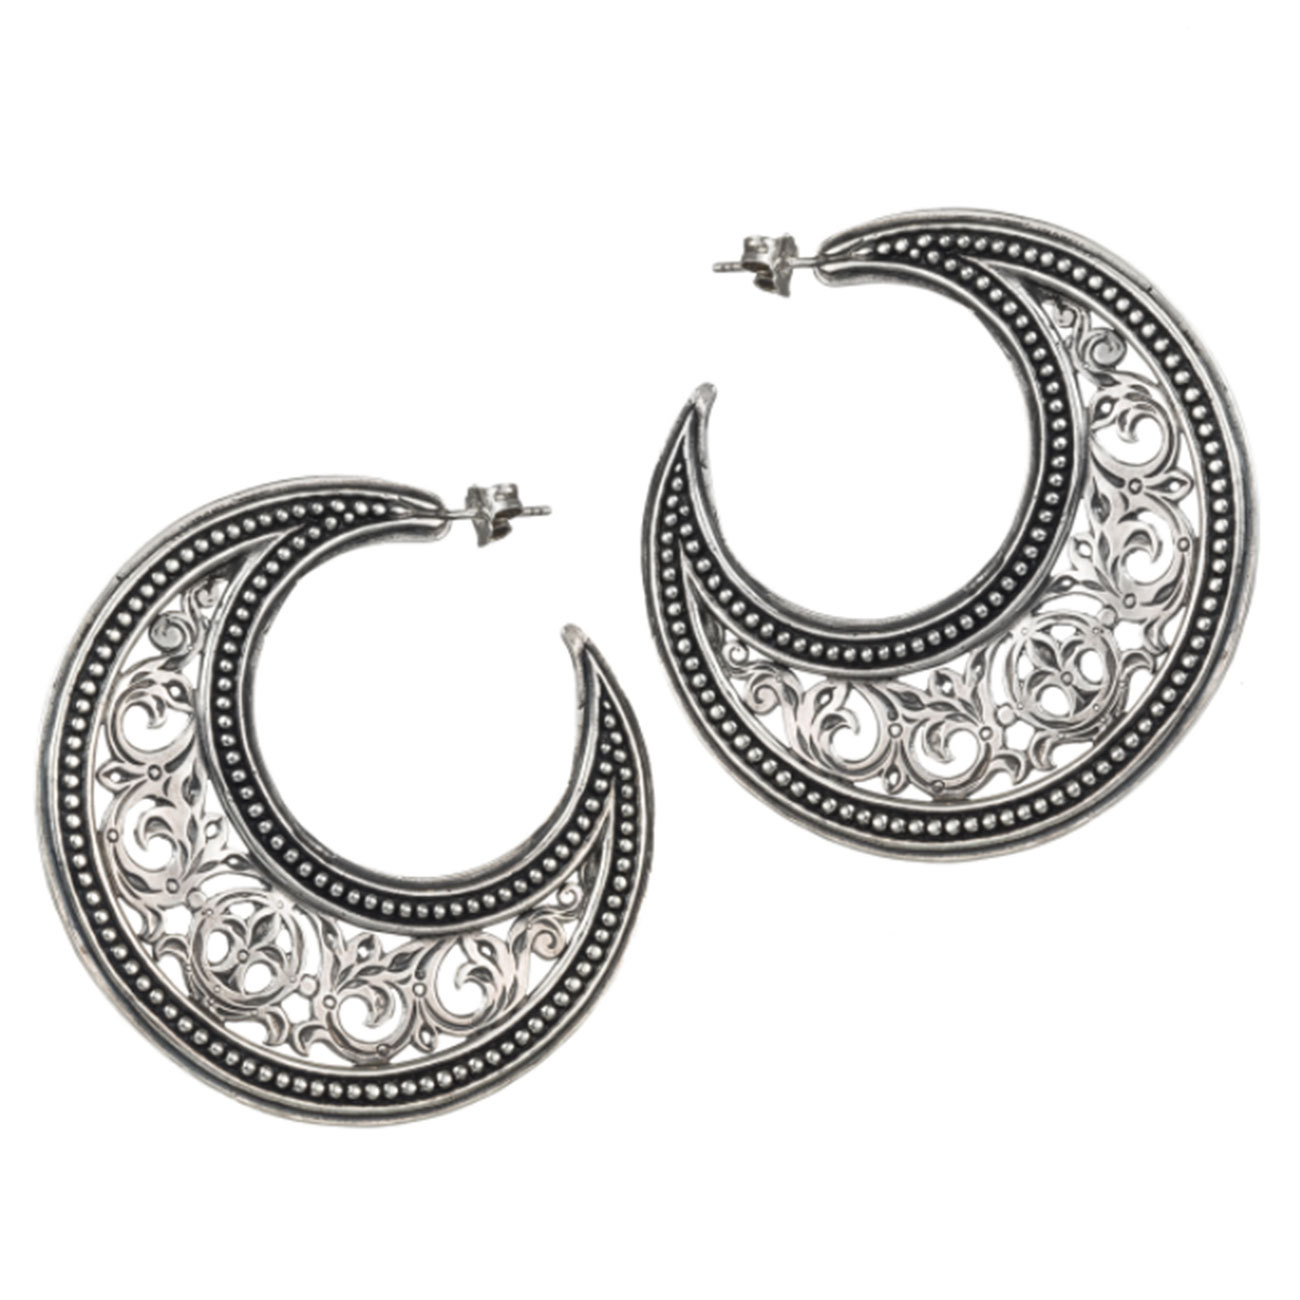 Primary image for Gerochristo 1164 - Sterling Silver Medieval Byzantine Crescent Earrings - L